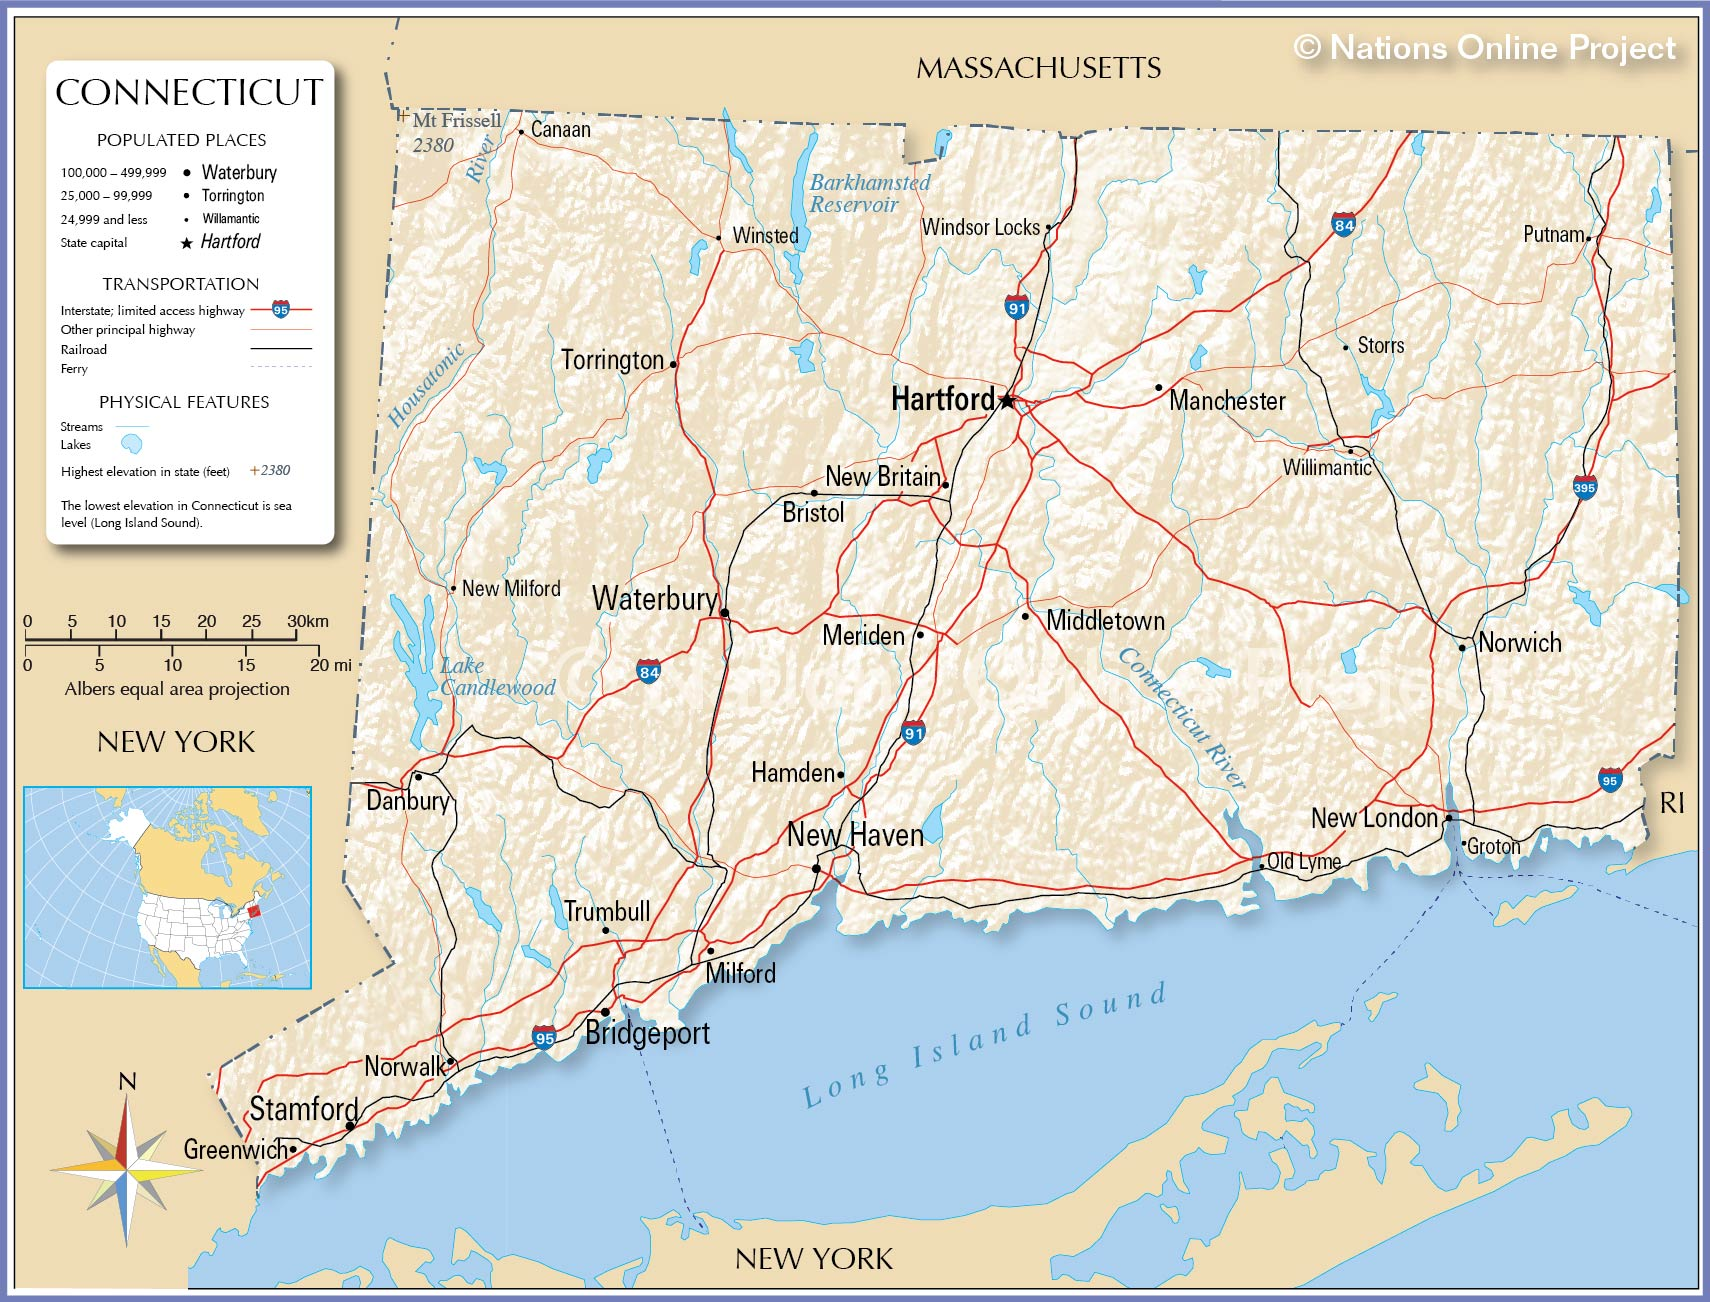 Reference Map Of Connecticut USA Nations Online Project - Conneticut map